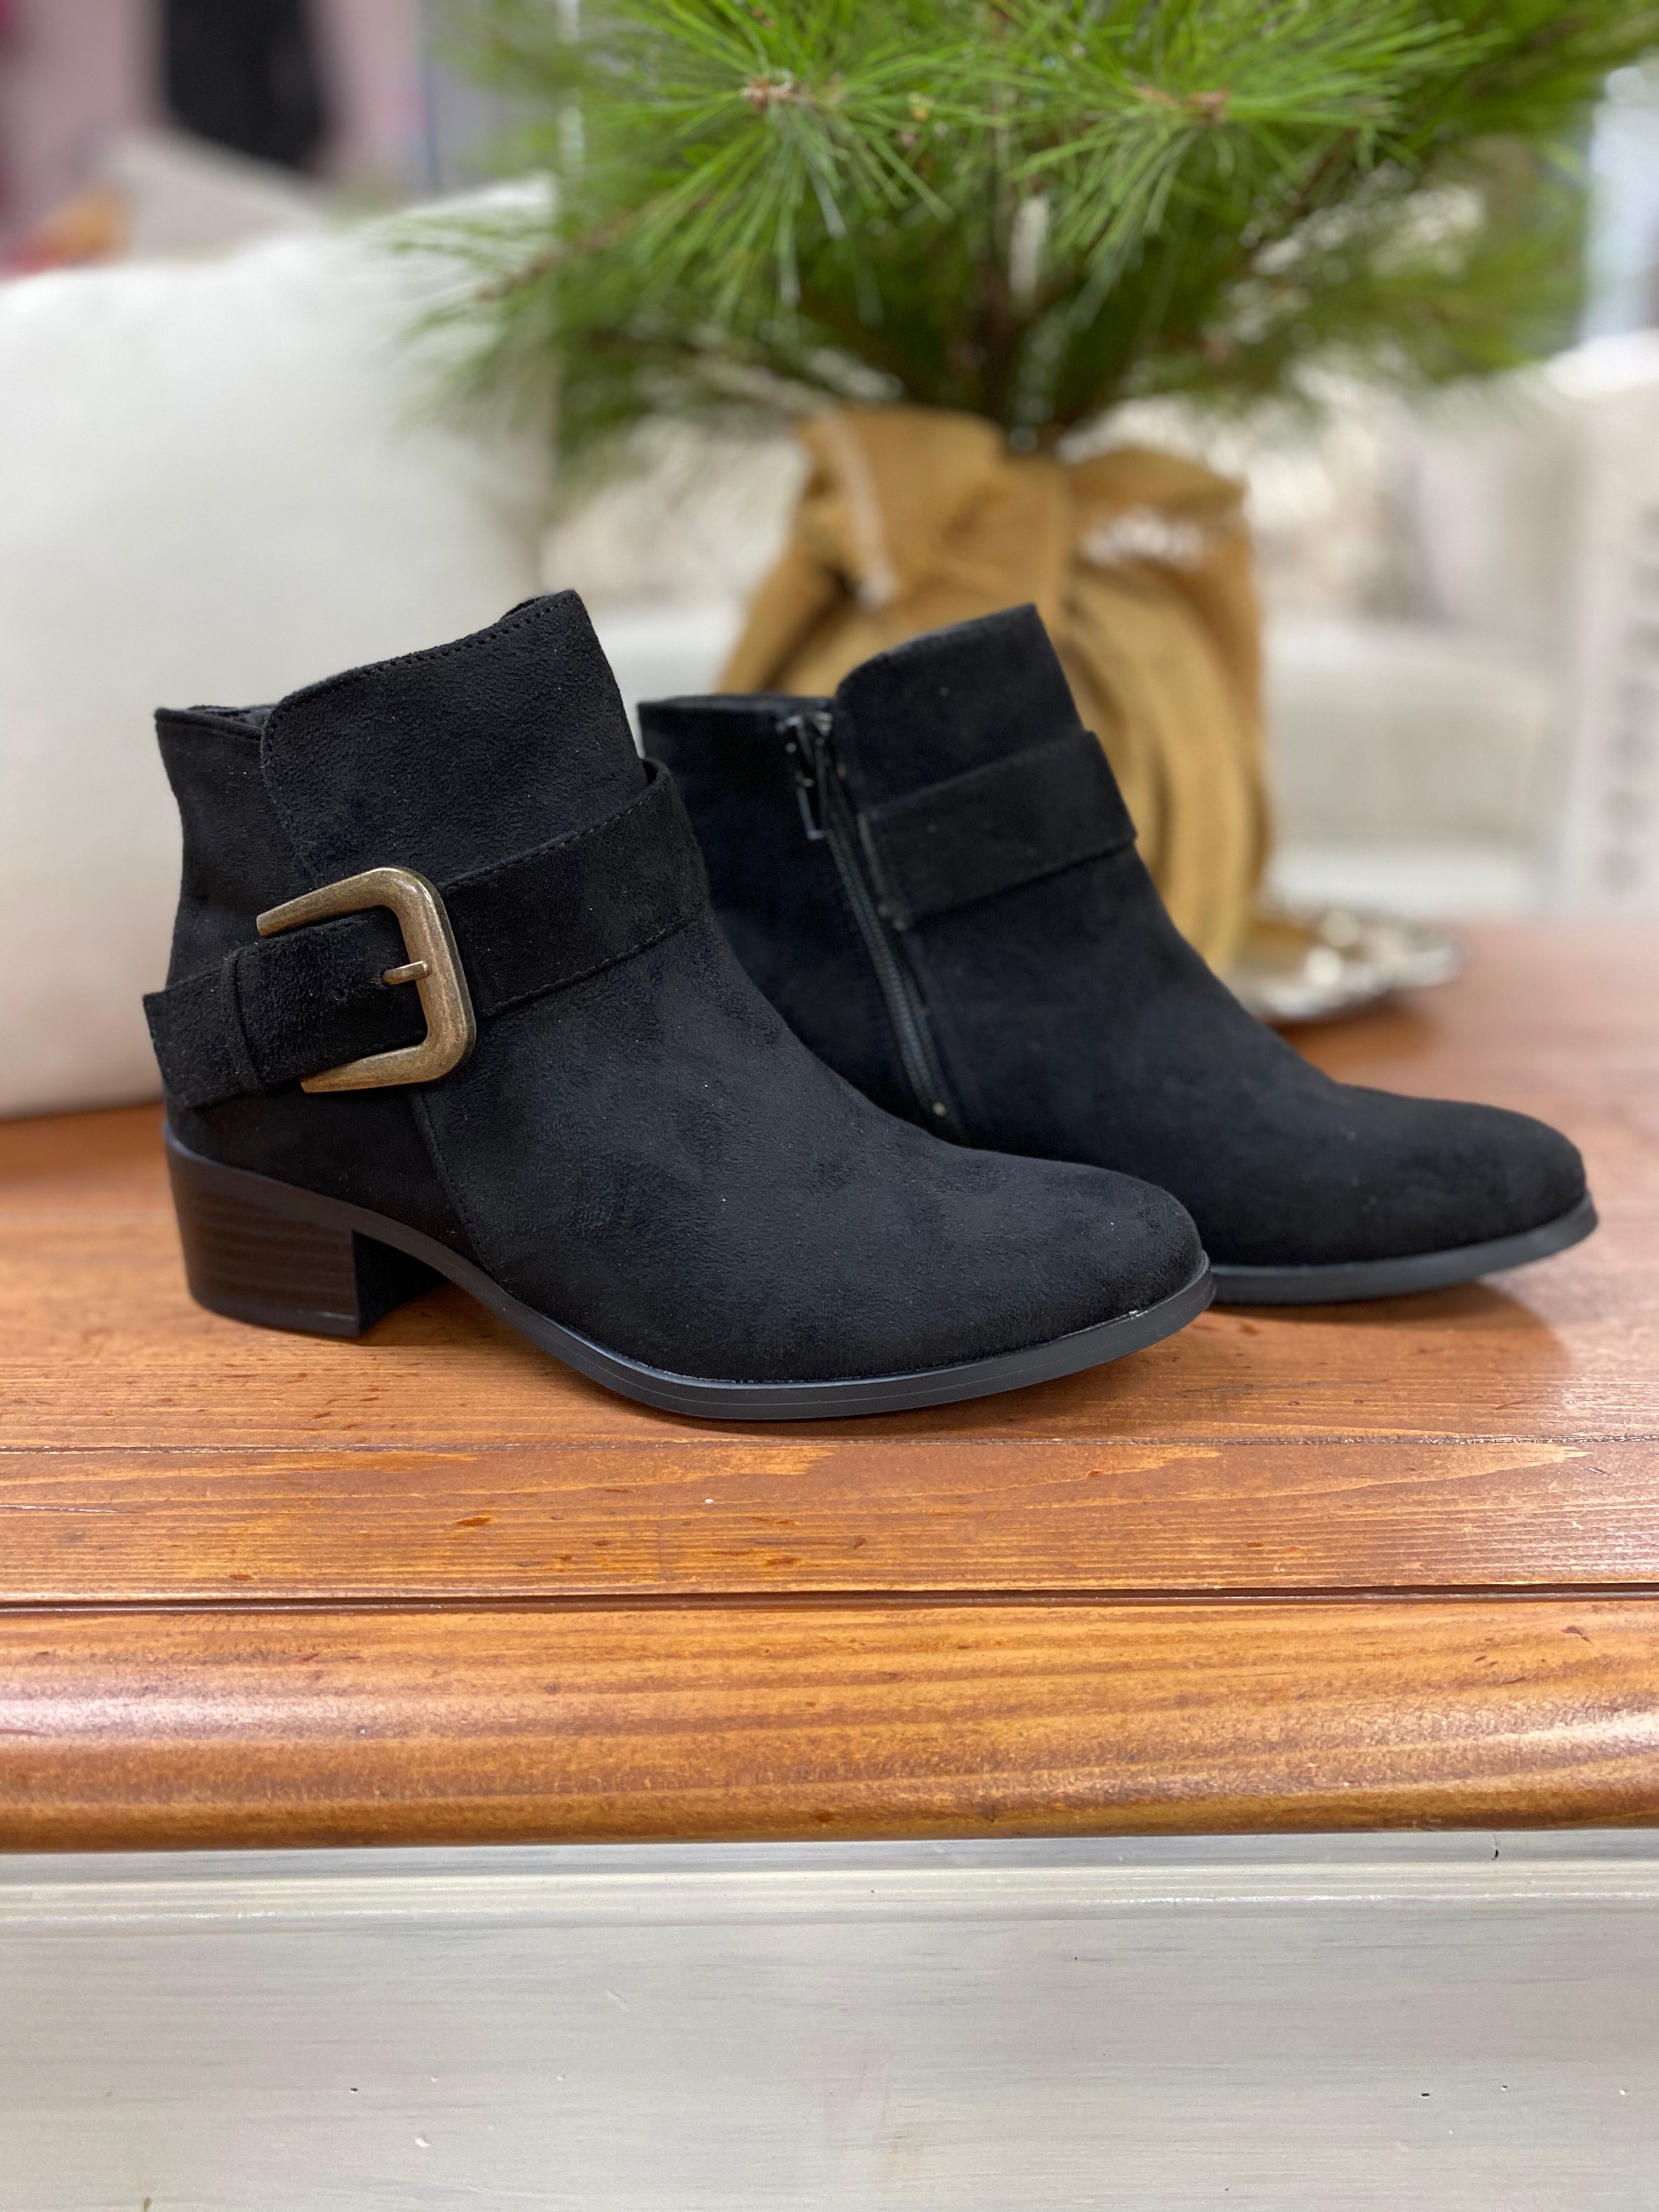 Qupid Black Booties - Whitt & Co. Clothing